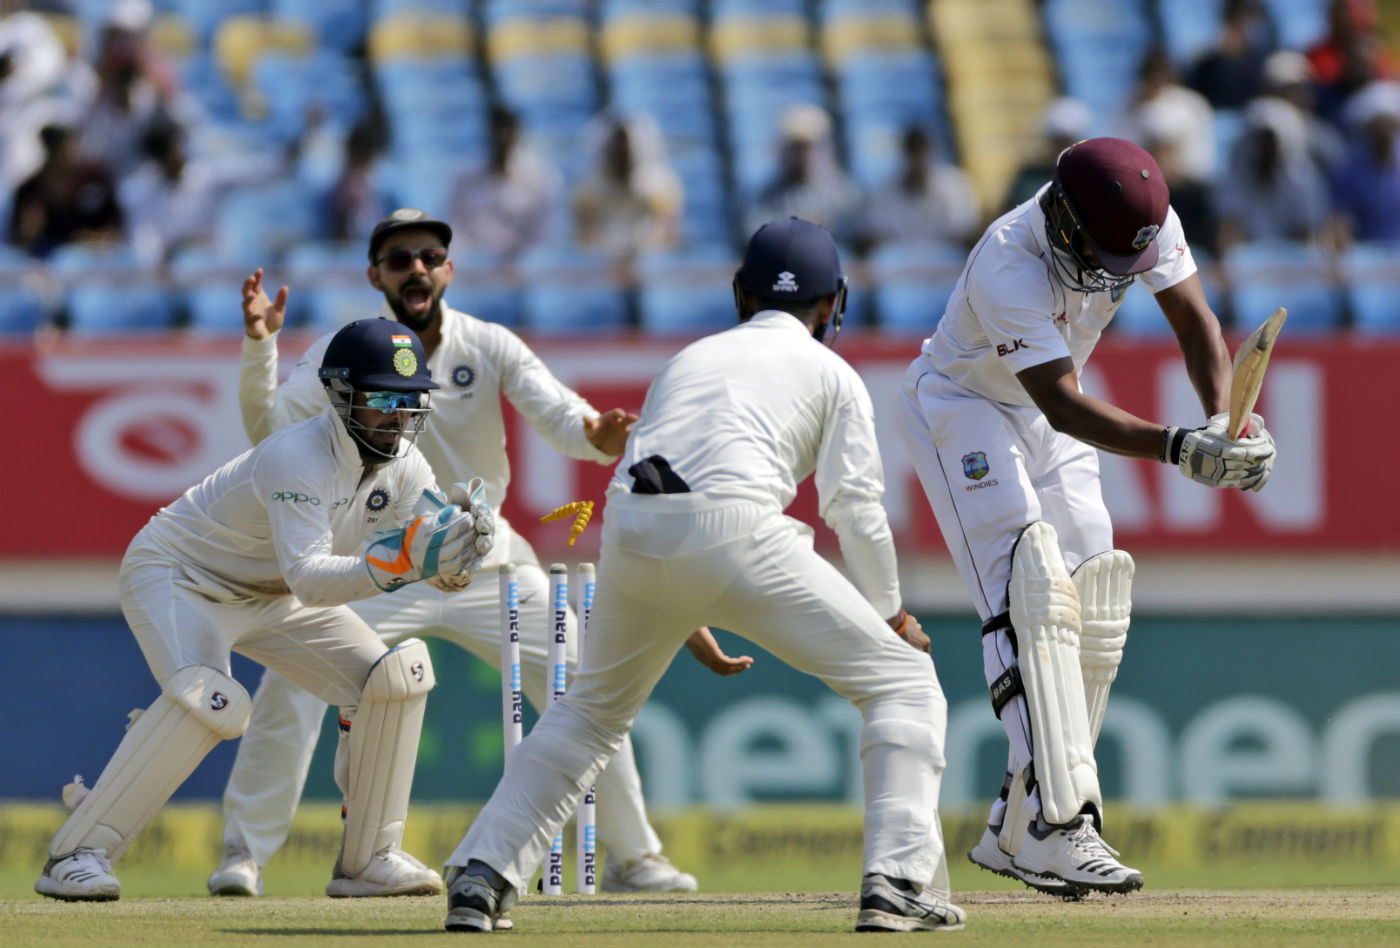 West Indies As The Opposition Is Not The Way You Prepare For Australia: Gautam Gambhir